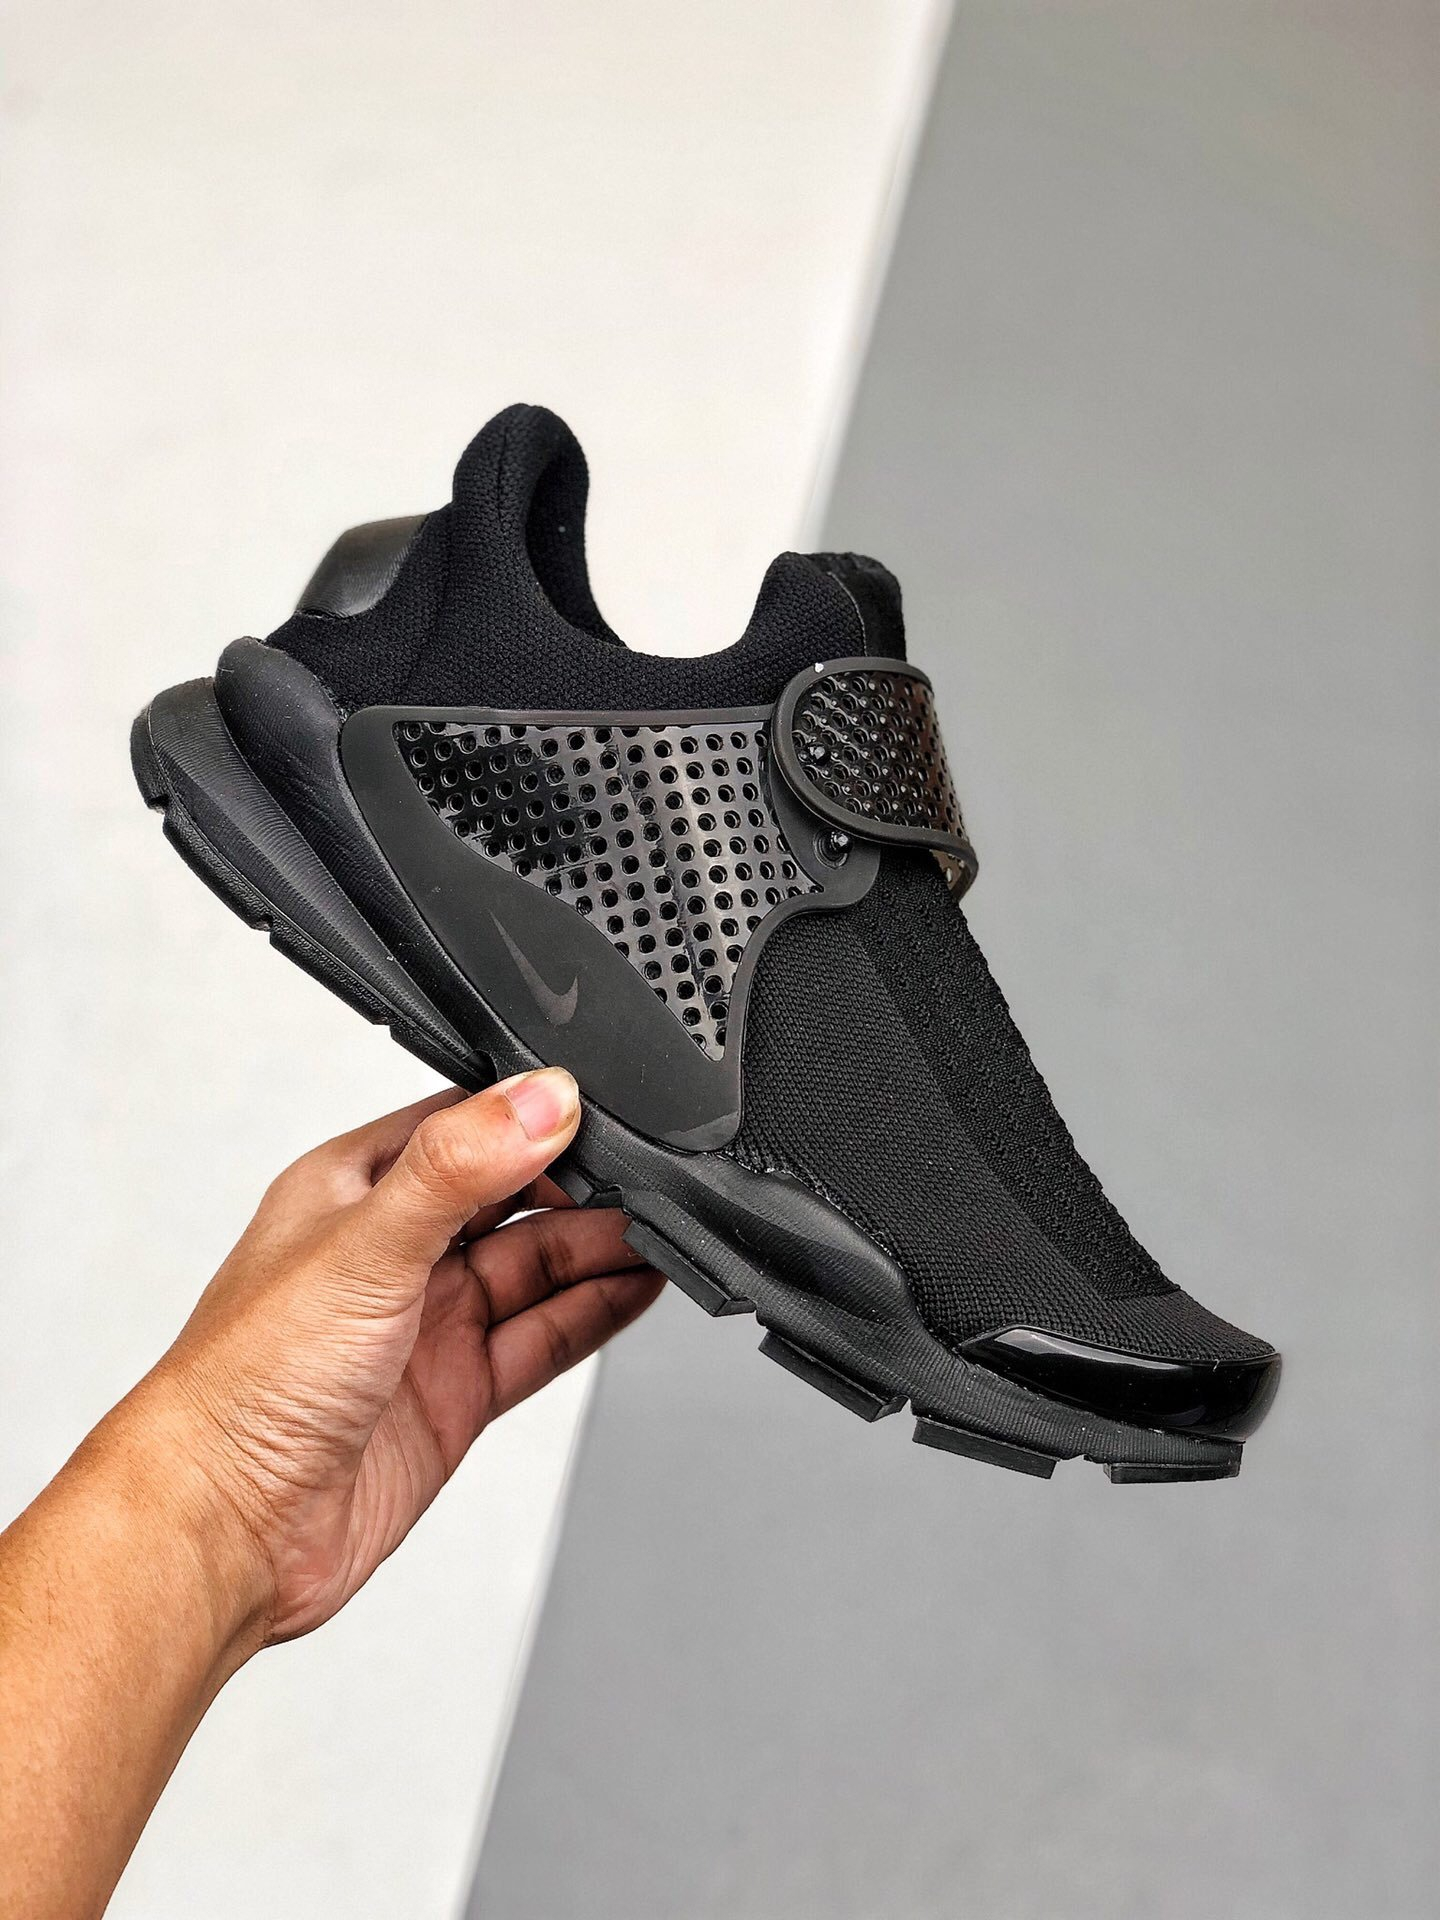 Image of NIKE Air Presto Fashion Woman Men Running Sneakers Sport Shoes